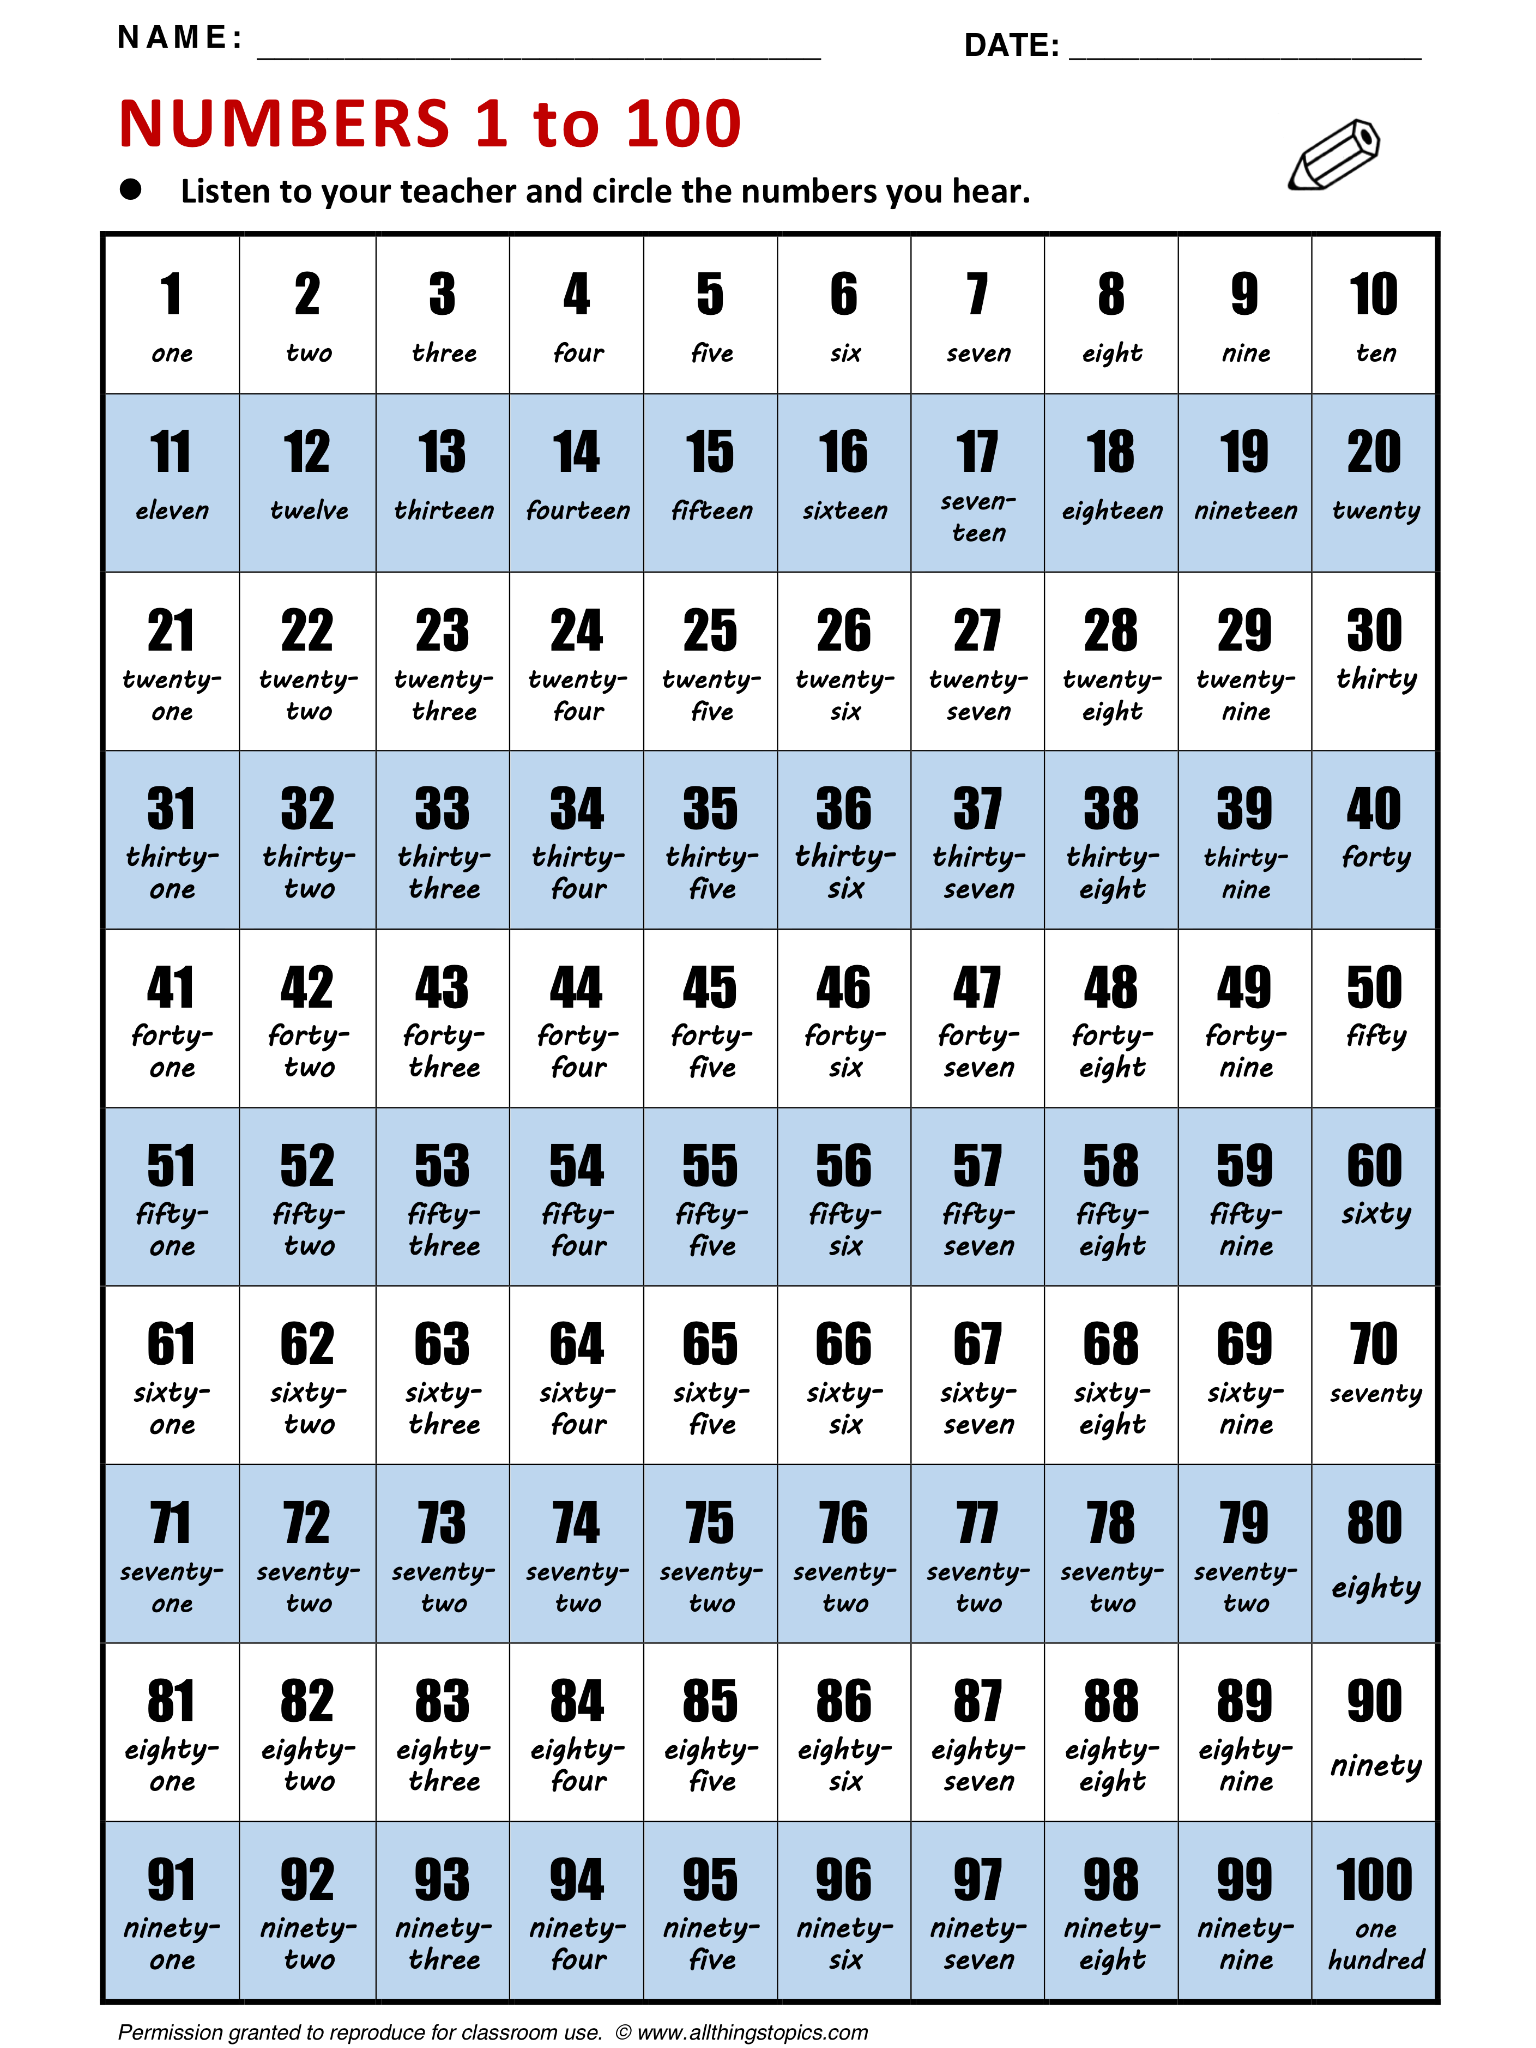 Worksheet Number Names 1-100 numbers 1 to 100 english learning vocabulary esl phrases